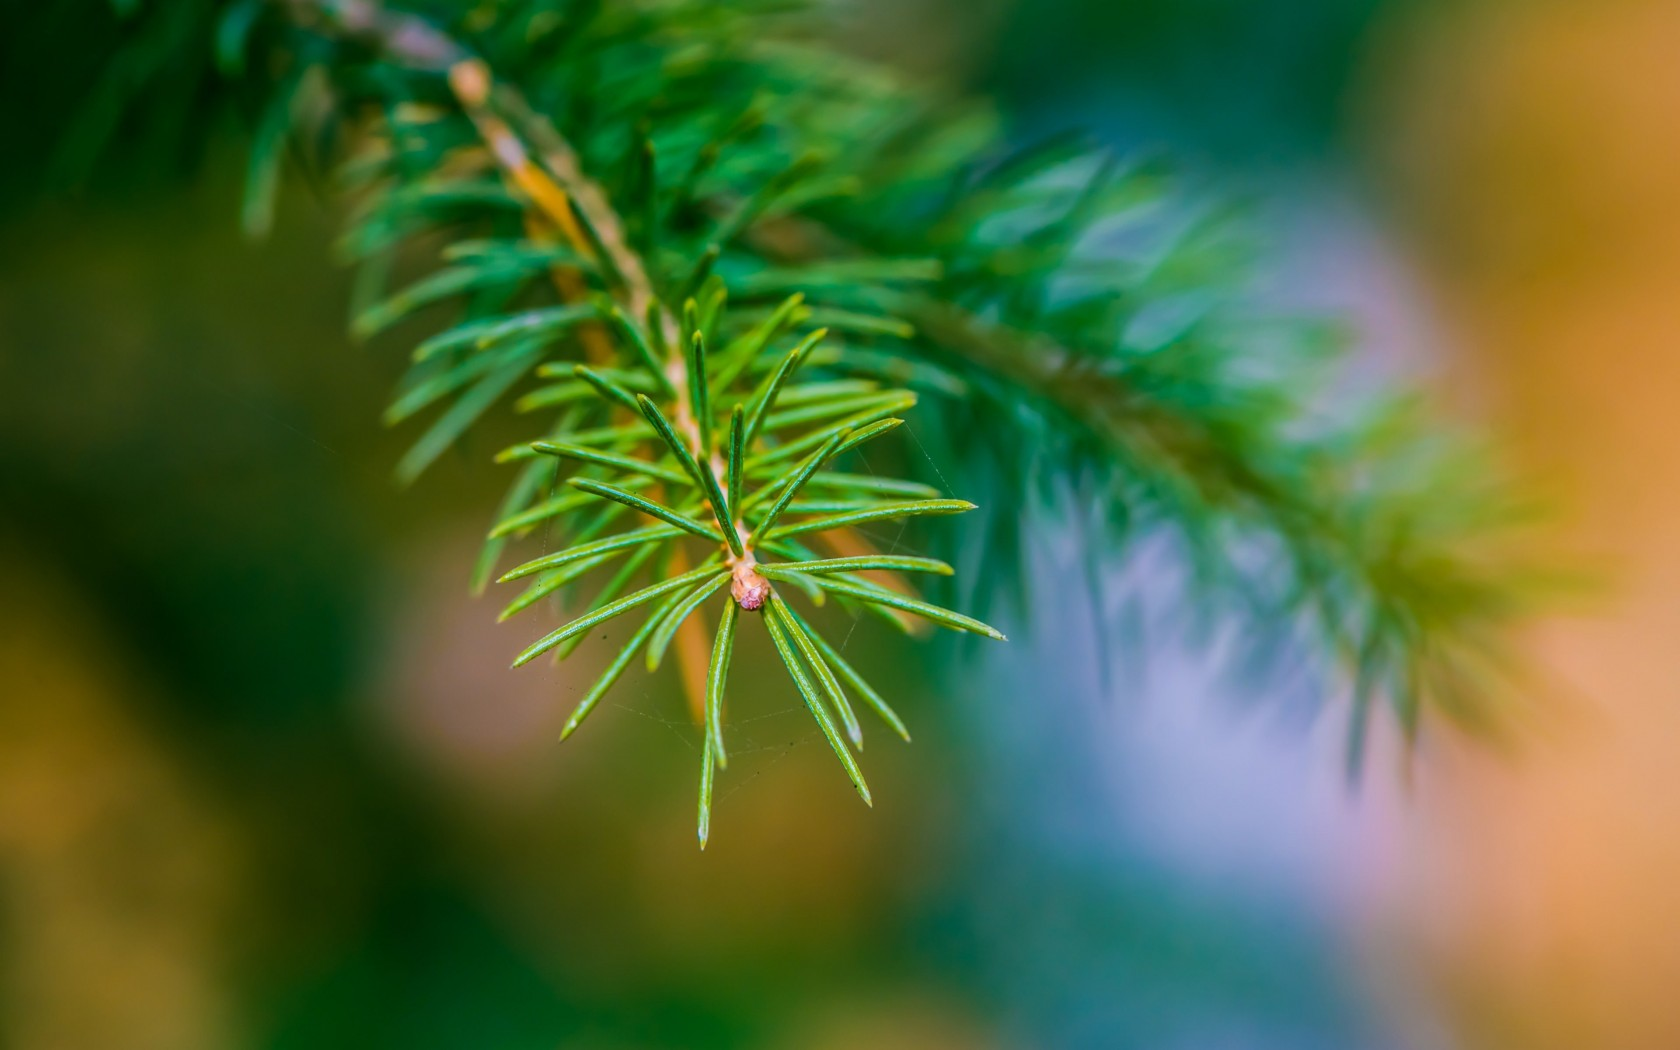 Fir Tree Branch Macro Wallpaper for Desktop 1680x1050